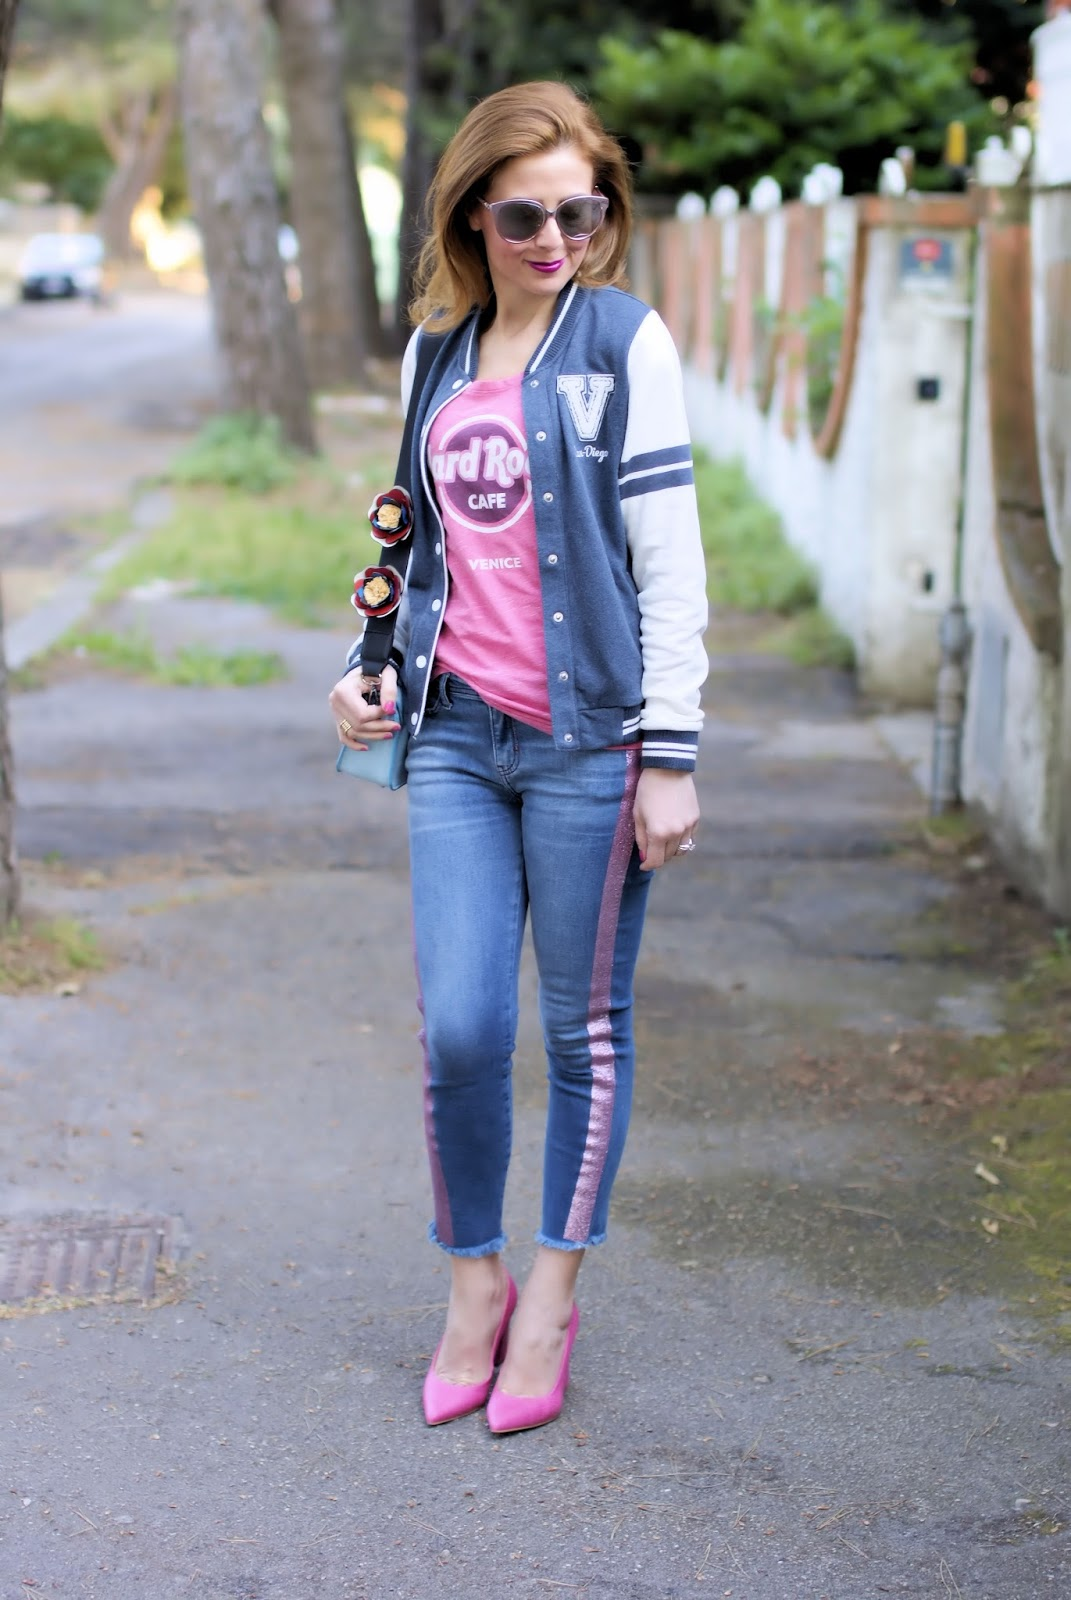 Hard Rock Cafe Venice t-shirt on Fashion and Cookies fashion blog, fashion blogger style